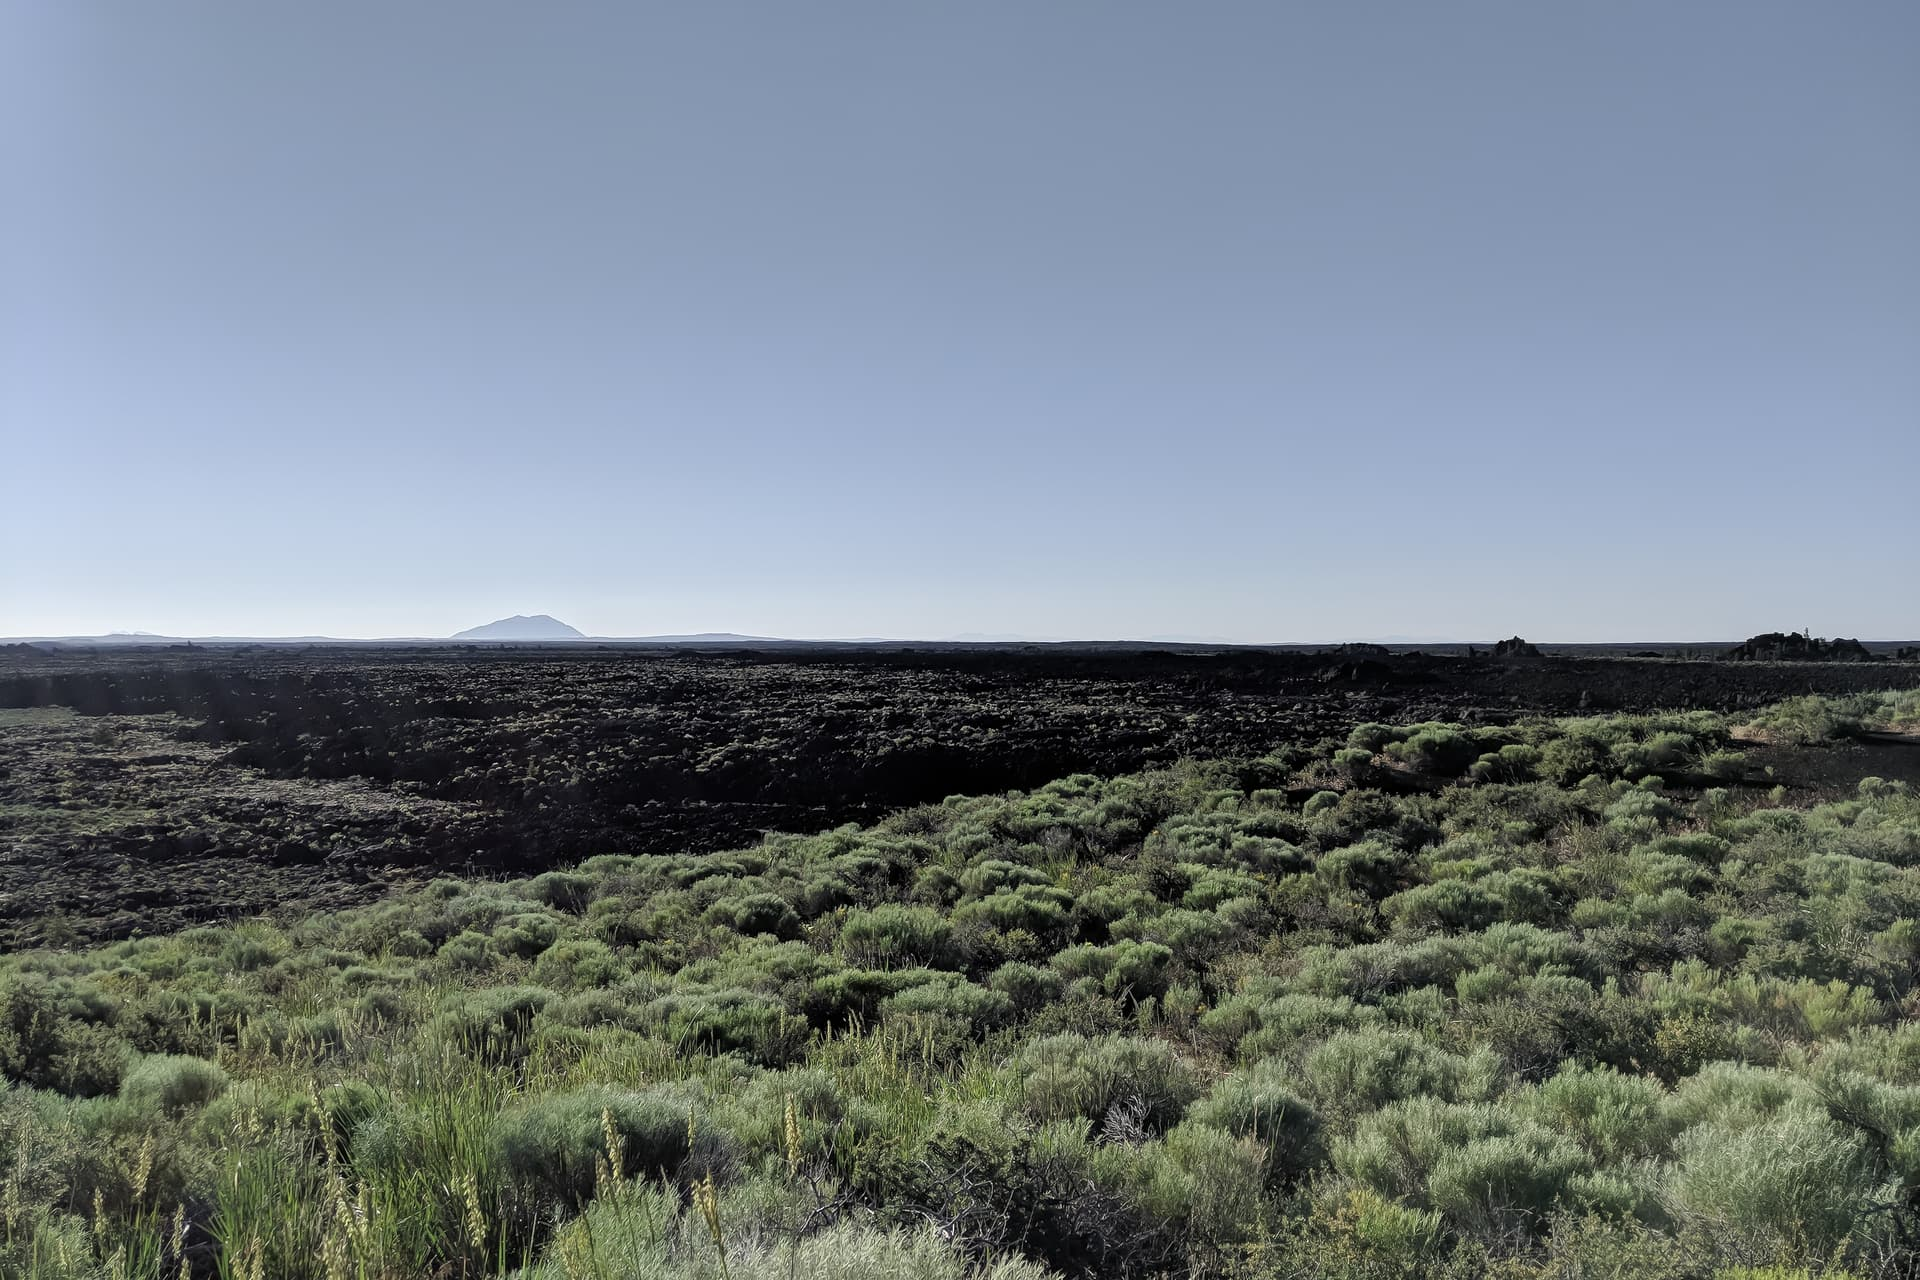 Desert scrubland abruptly ends in a dark, jagged lava field that stretches to the horizon. In the distance, an imposing lava dome rises above the horizon.